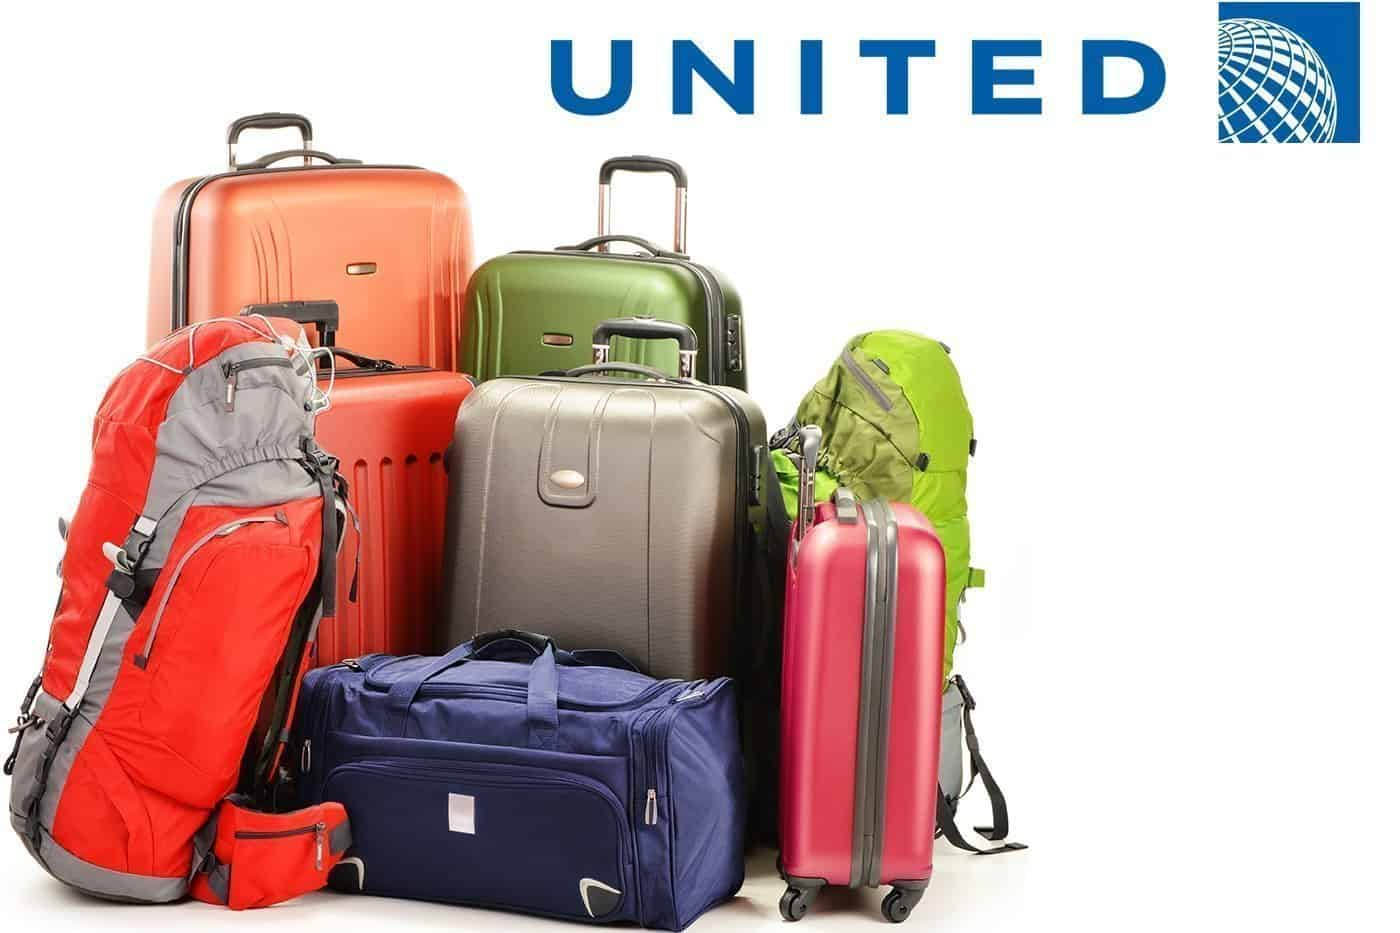 Colorful luggage. United logo at top of image.